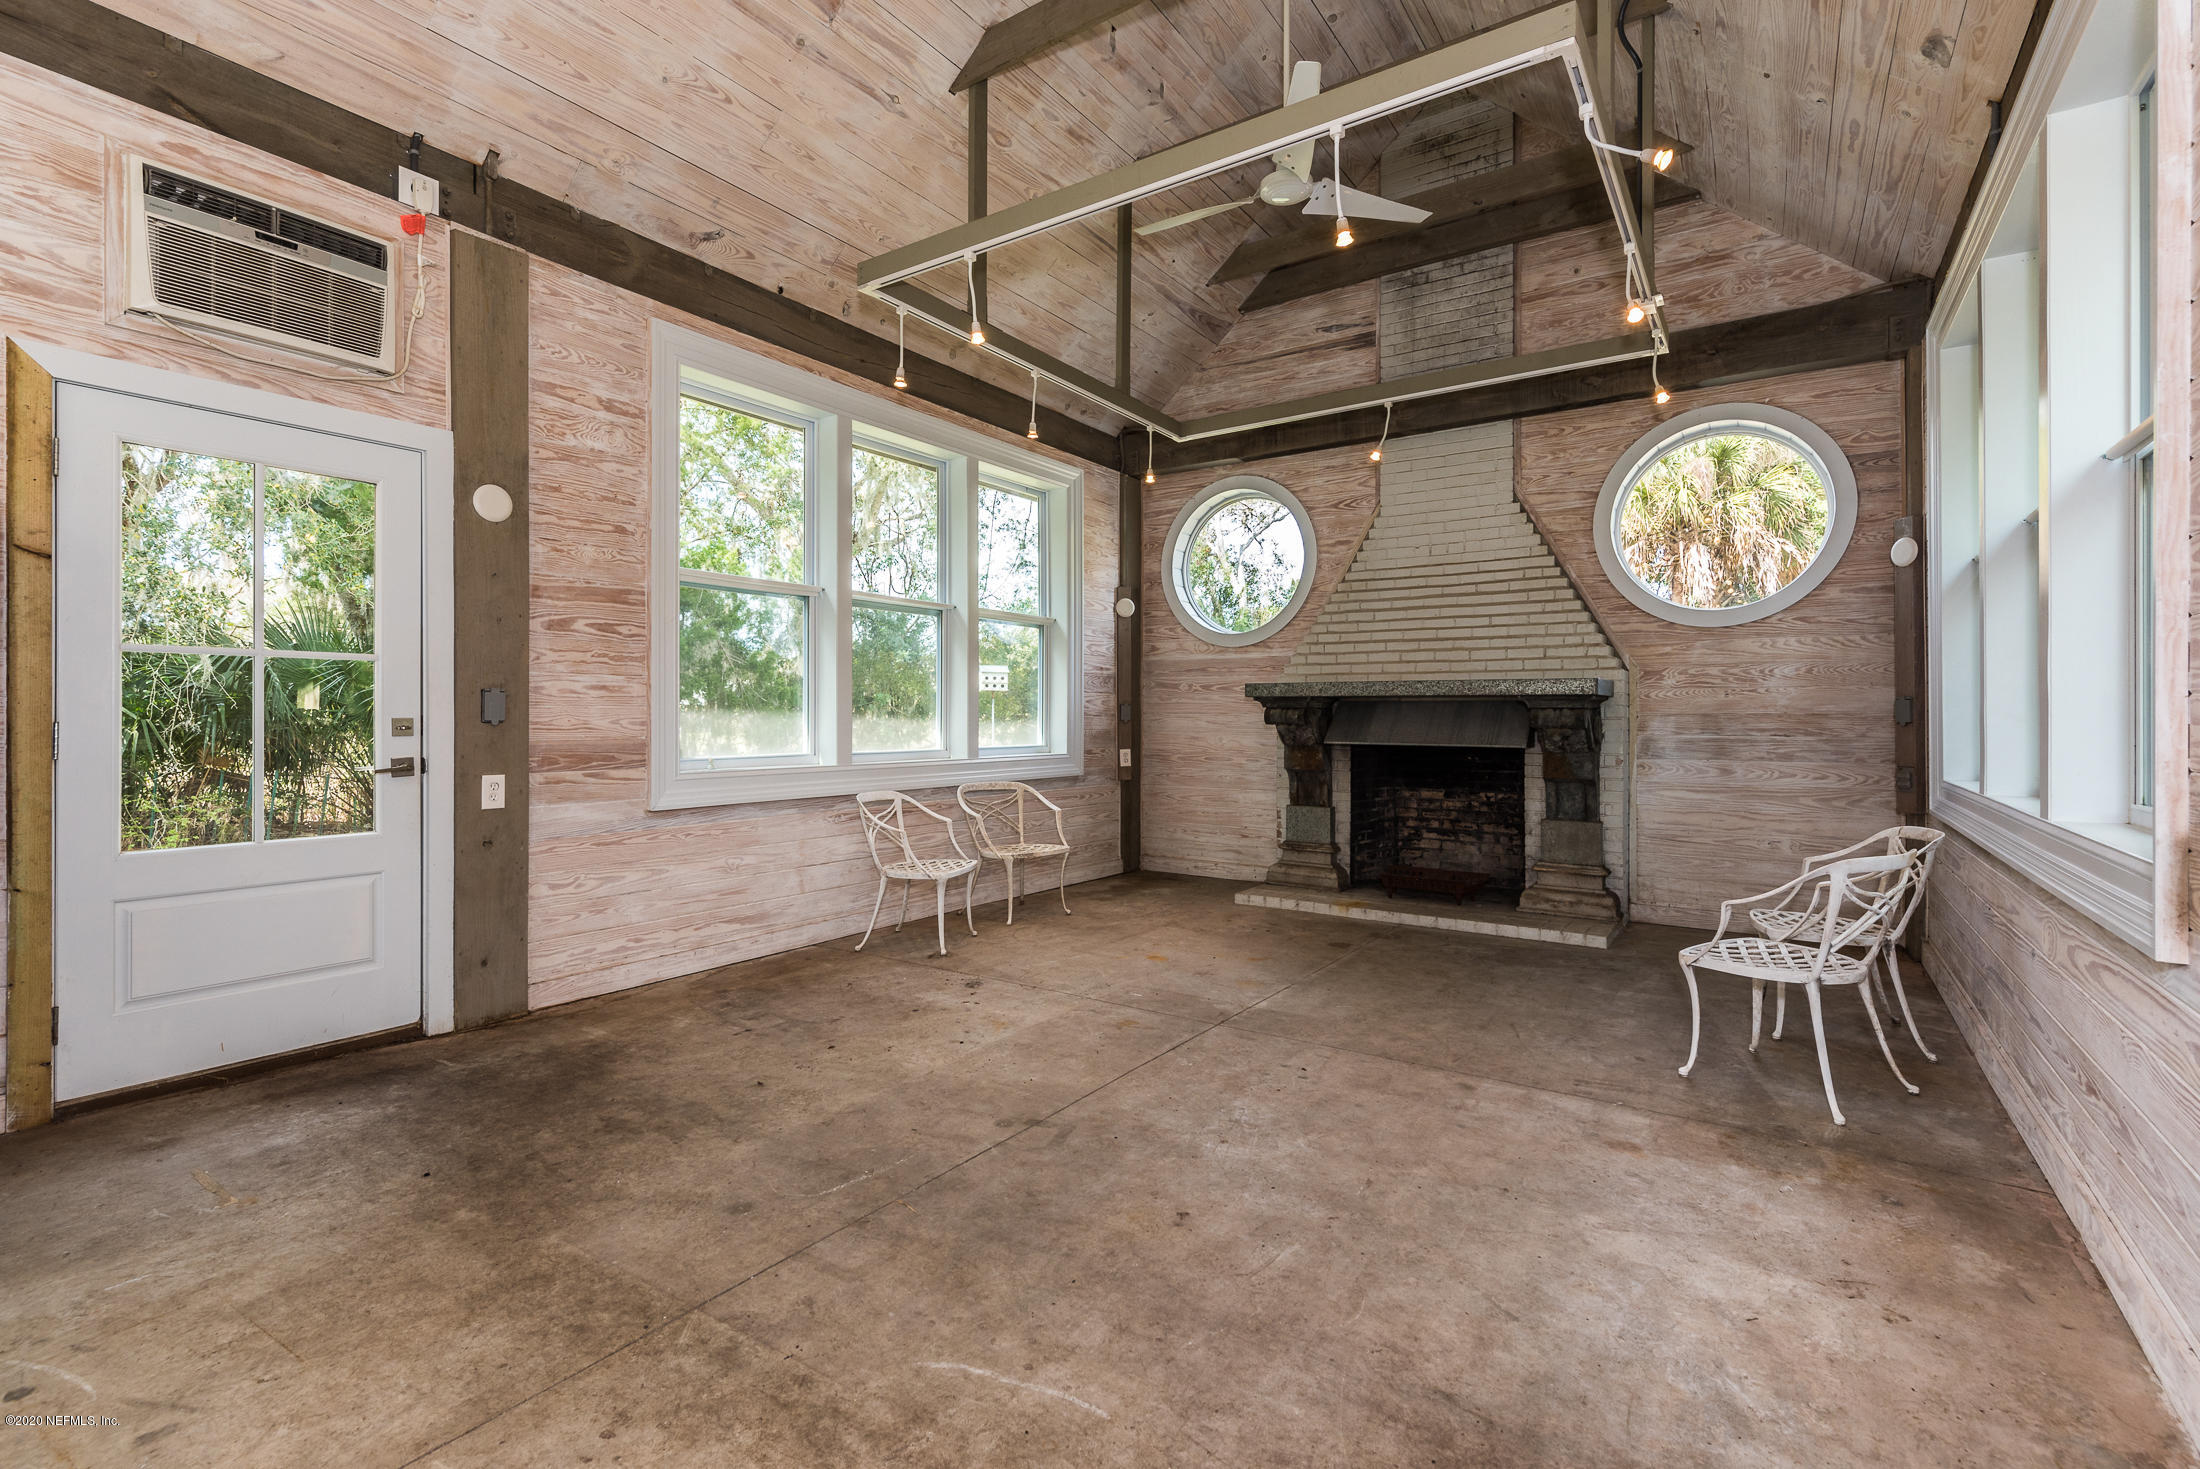 404 OLD QUARRY, ST AUGUSTINE, FLORIDA 32080, 4 Bedrooms Bedrooms, ,4 BathroomsBathrooms,Residential,For sale,OLD QUARRY,1048809